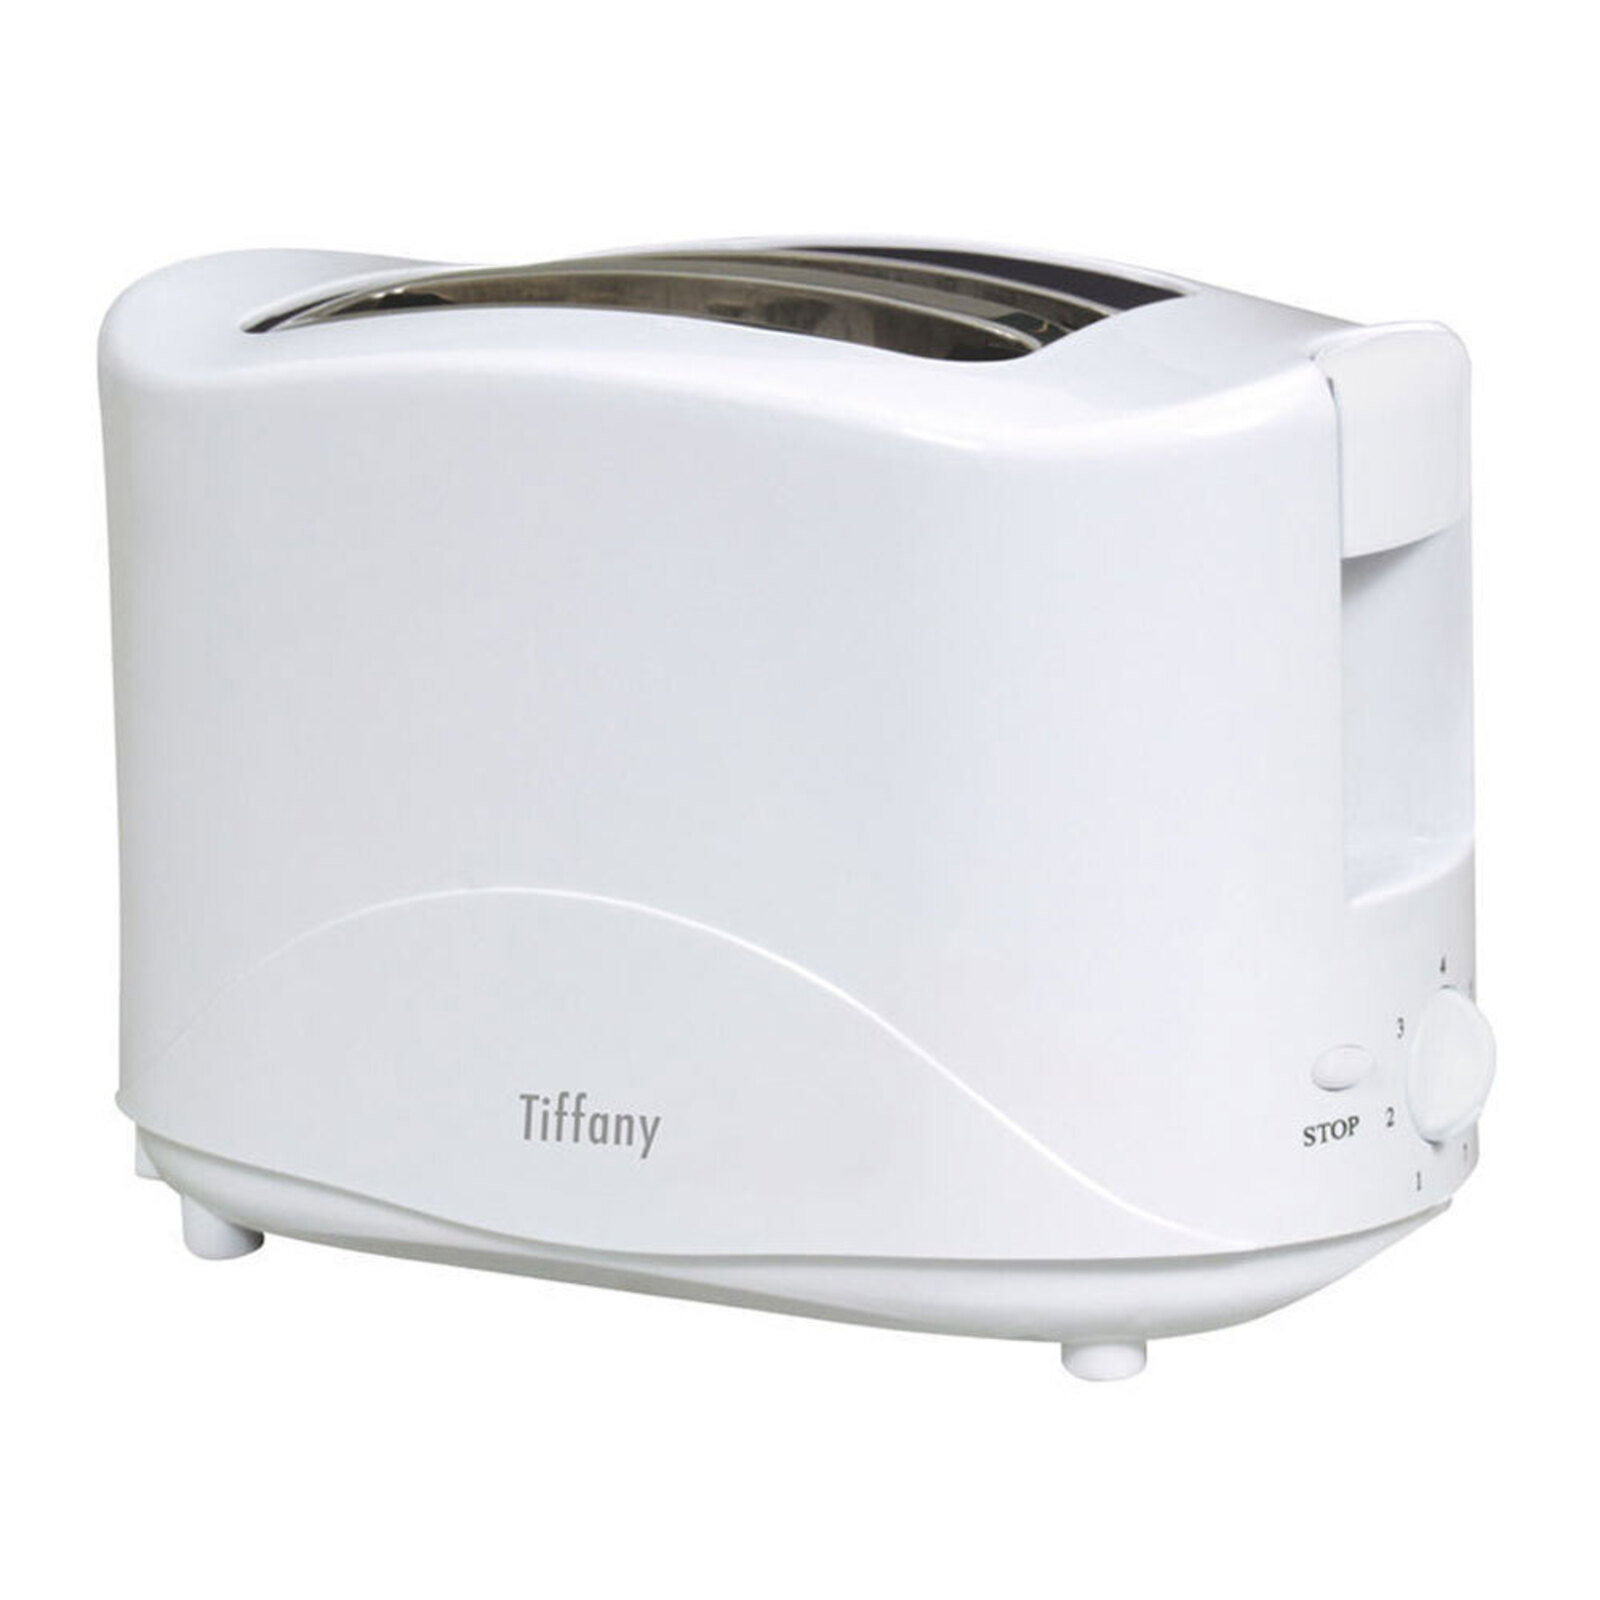 Tiffany Touch Electric 750W 2 Slice/Slot Bread Toaster Sandwich/Toast Maker WHT